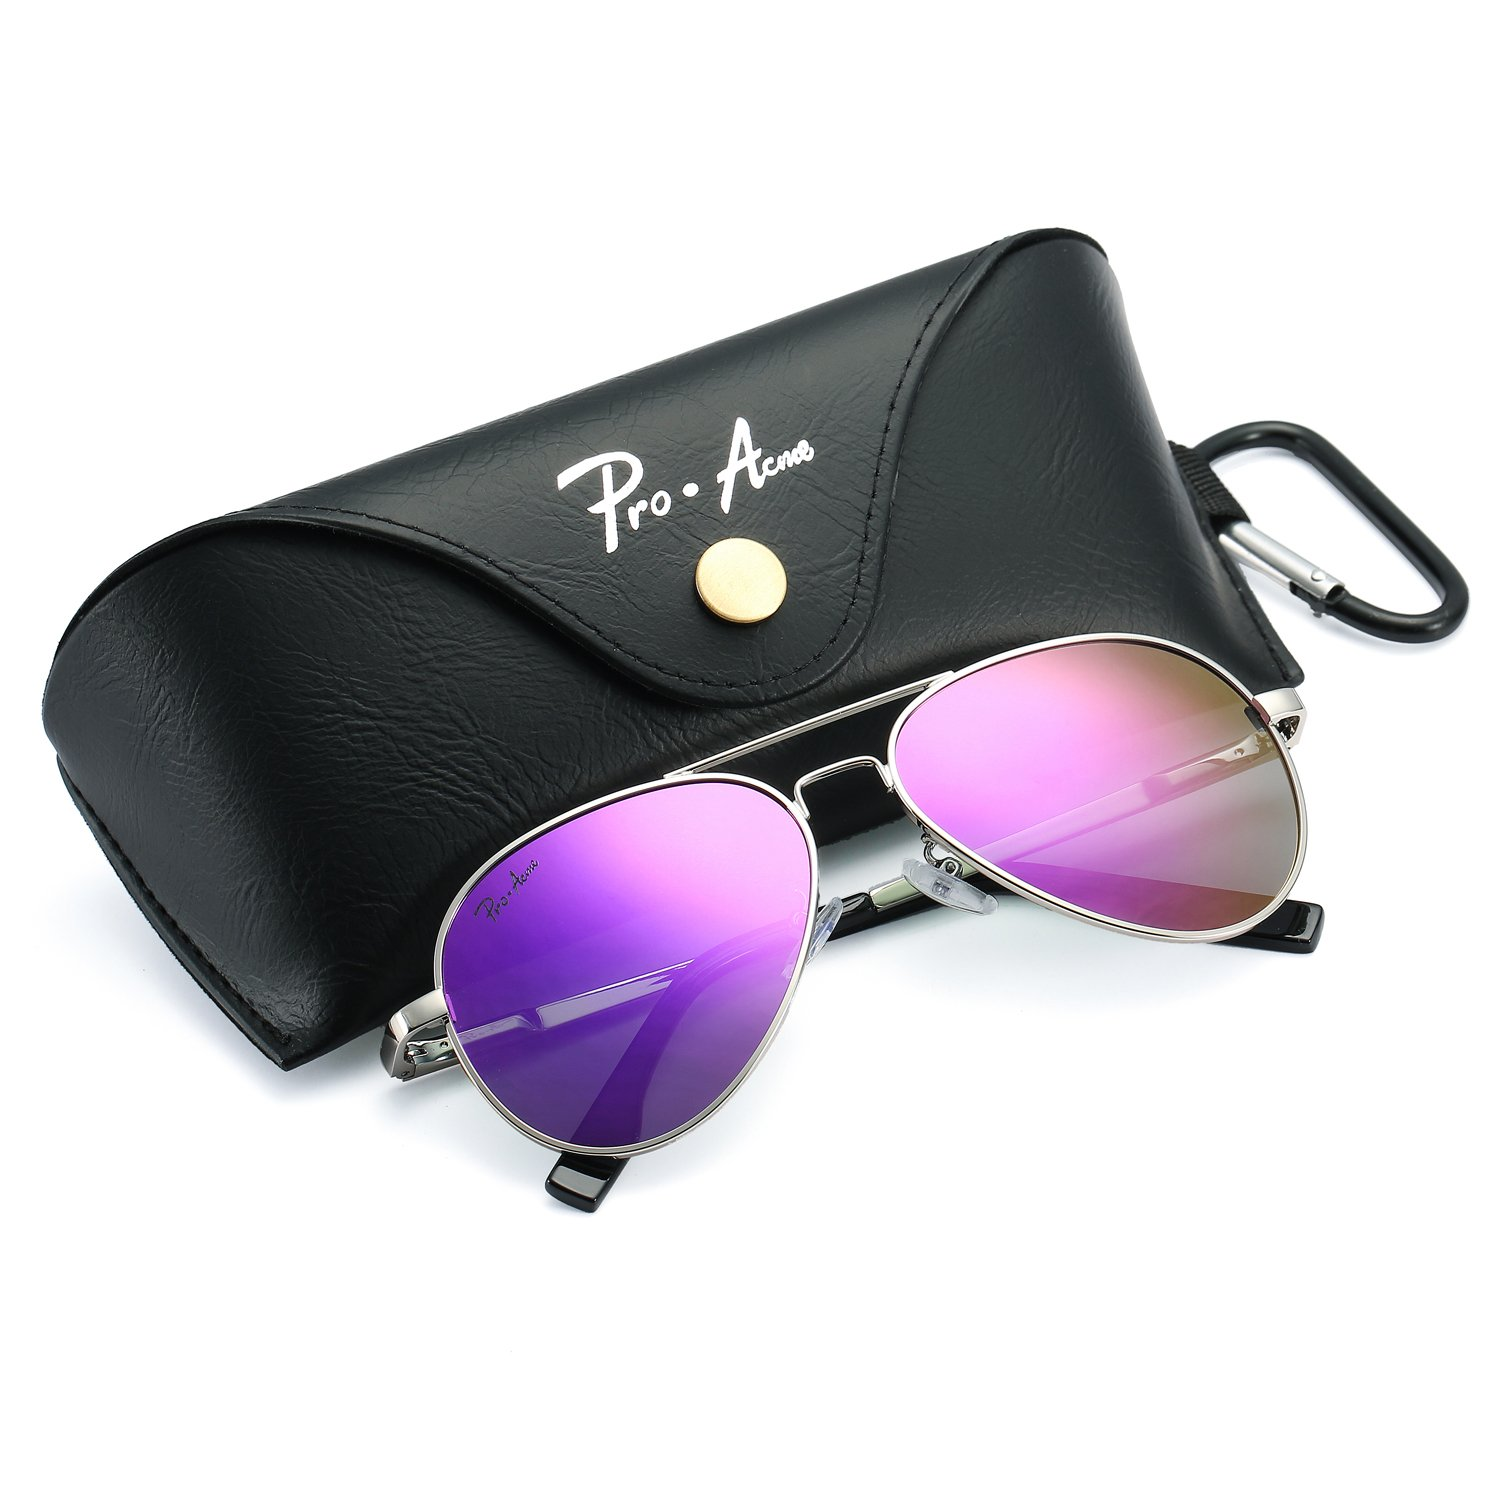 Pro Acme Small Polarized Aviator Sunglasses for Adult Small Face and Junior,52mm (Silver Frame/Purple Mirrored Lens)